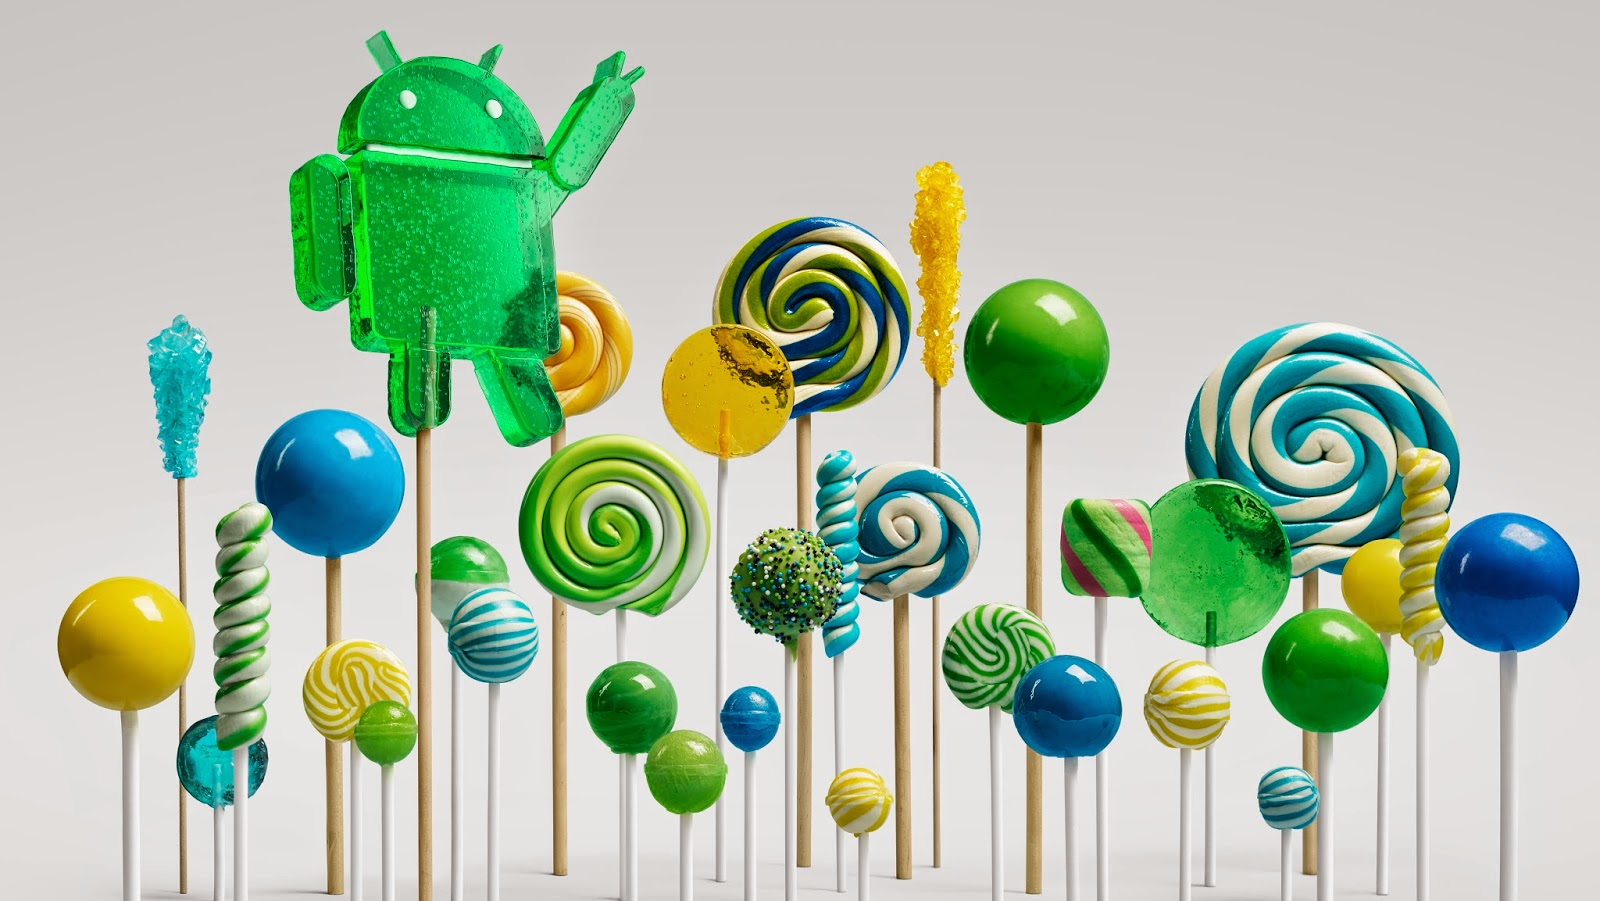 Android 5.0 Lollipop to